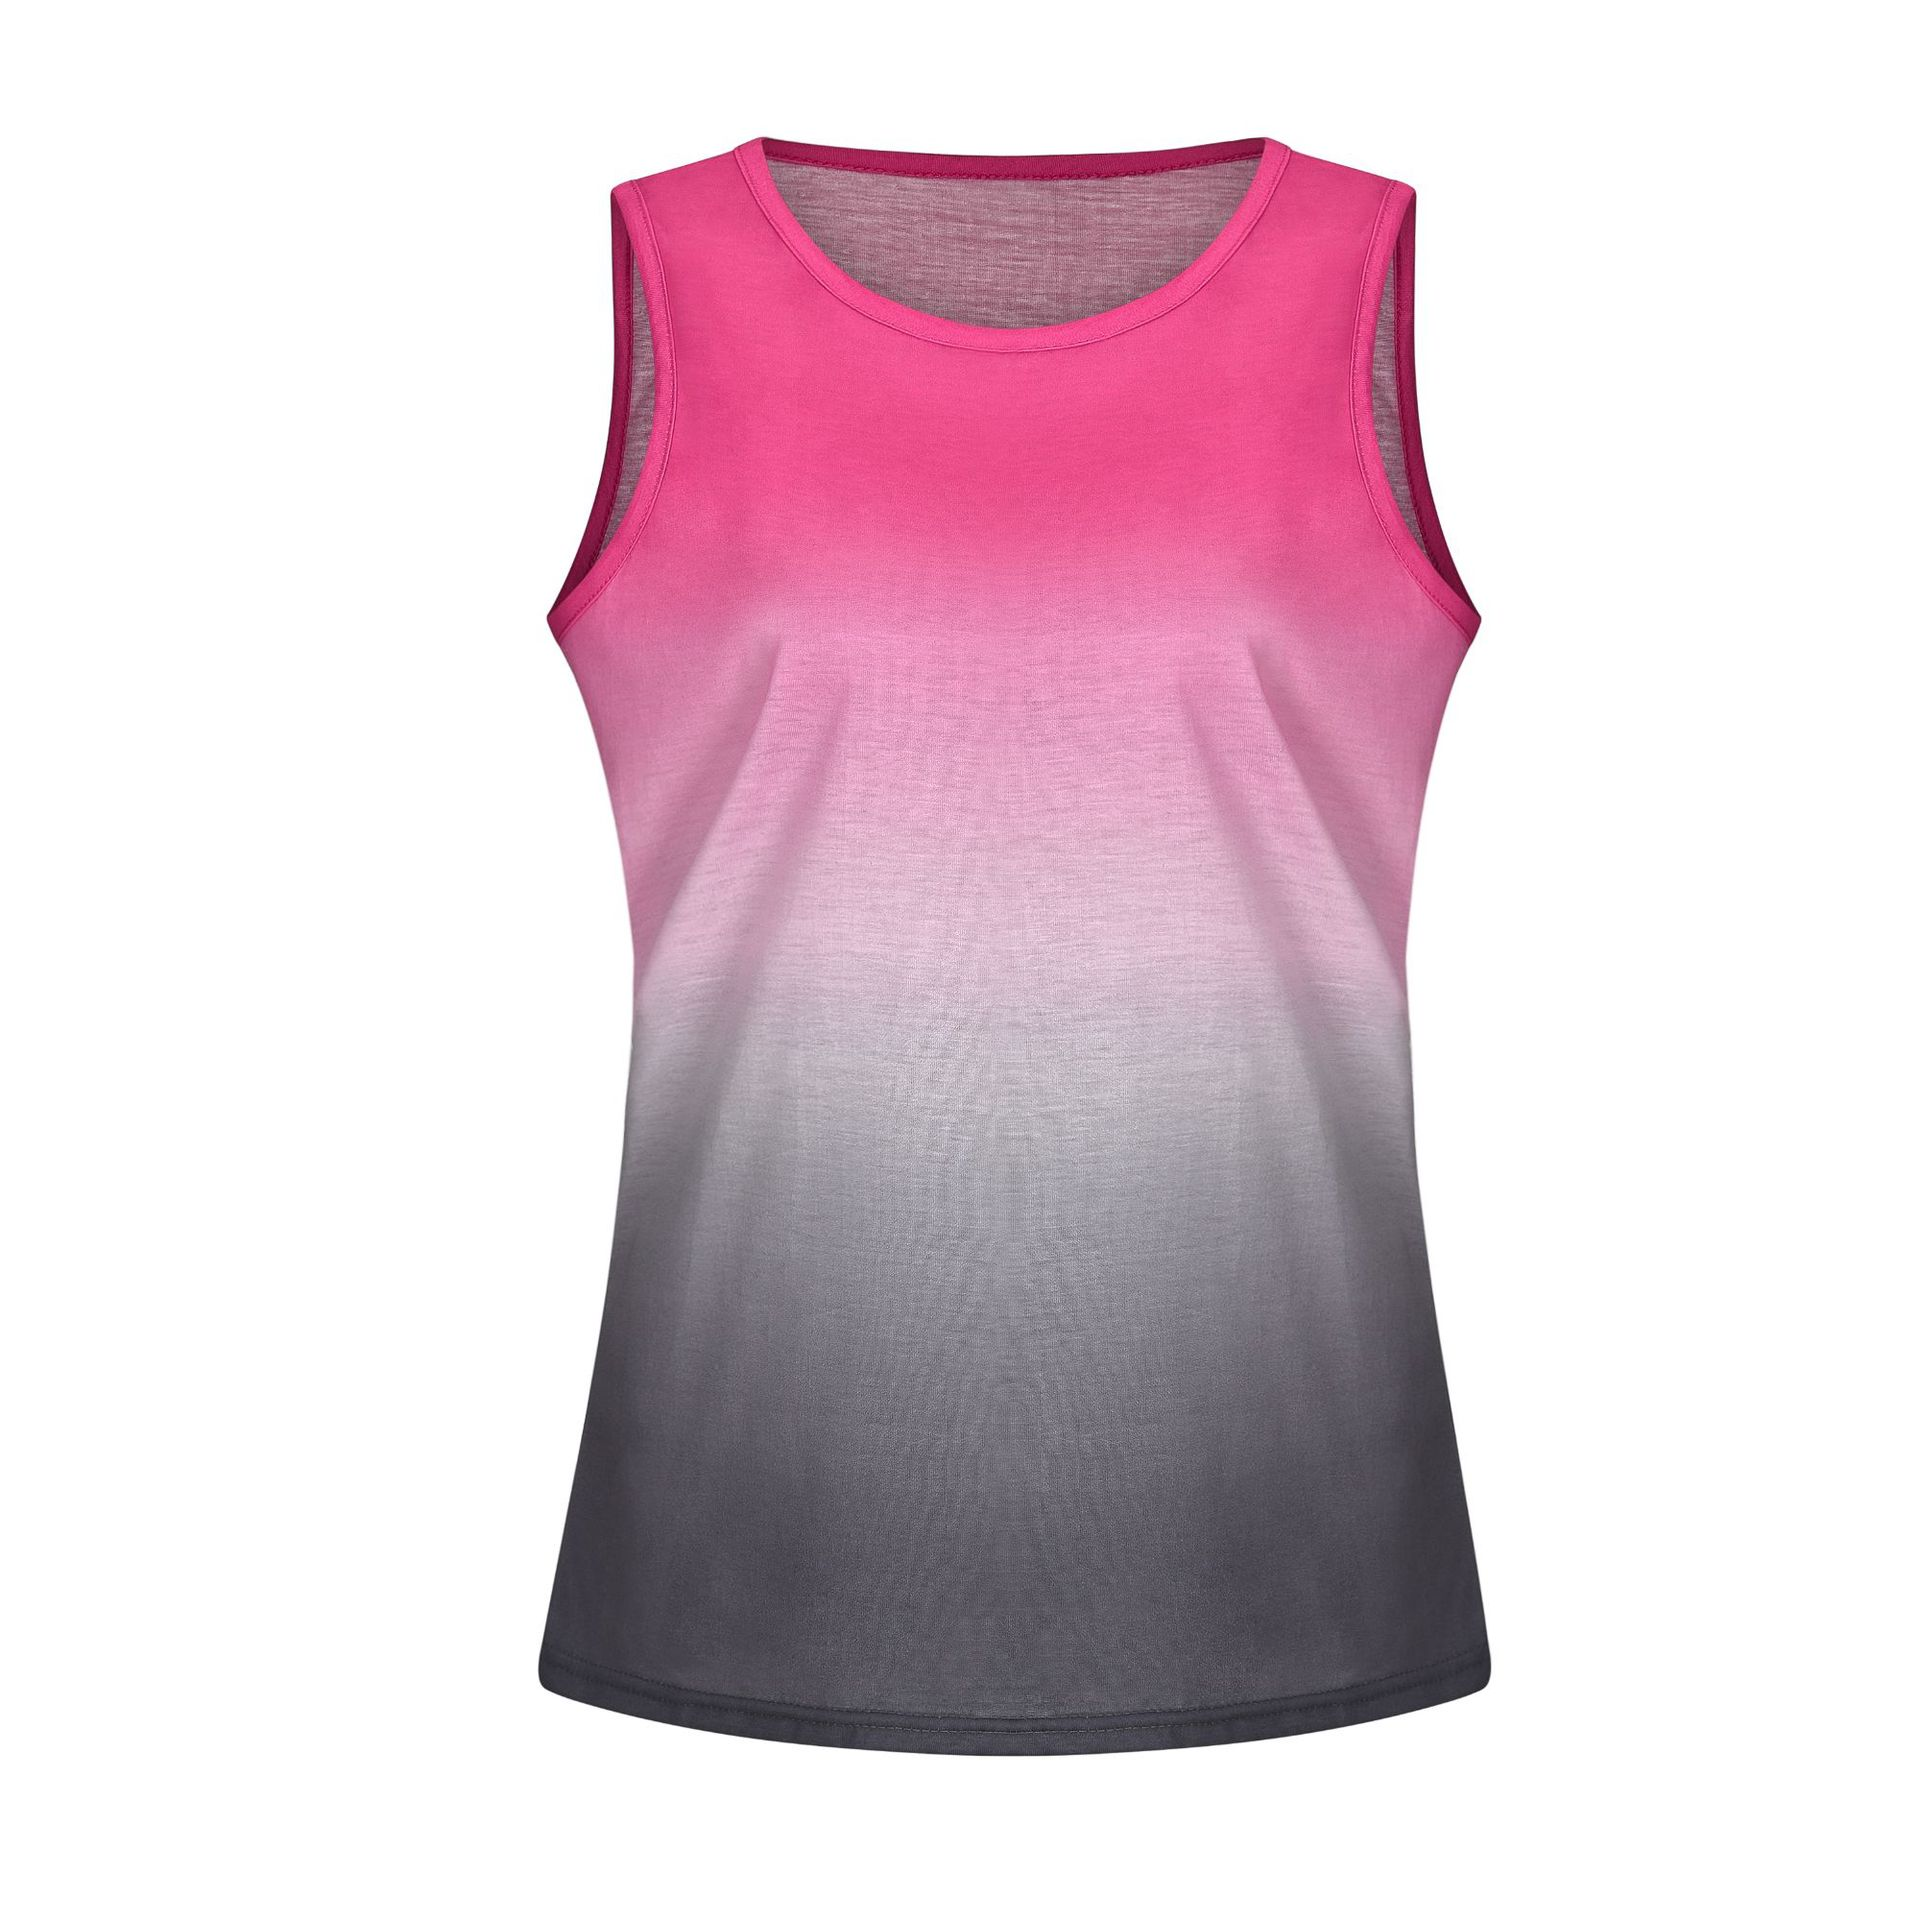 2019 Hot Sales Summer Girls Rainbow Gradient Printed T-shirt Casual Vest for Women